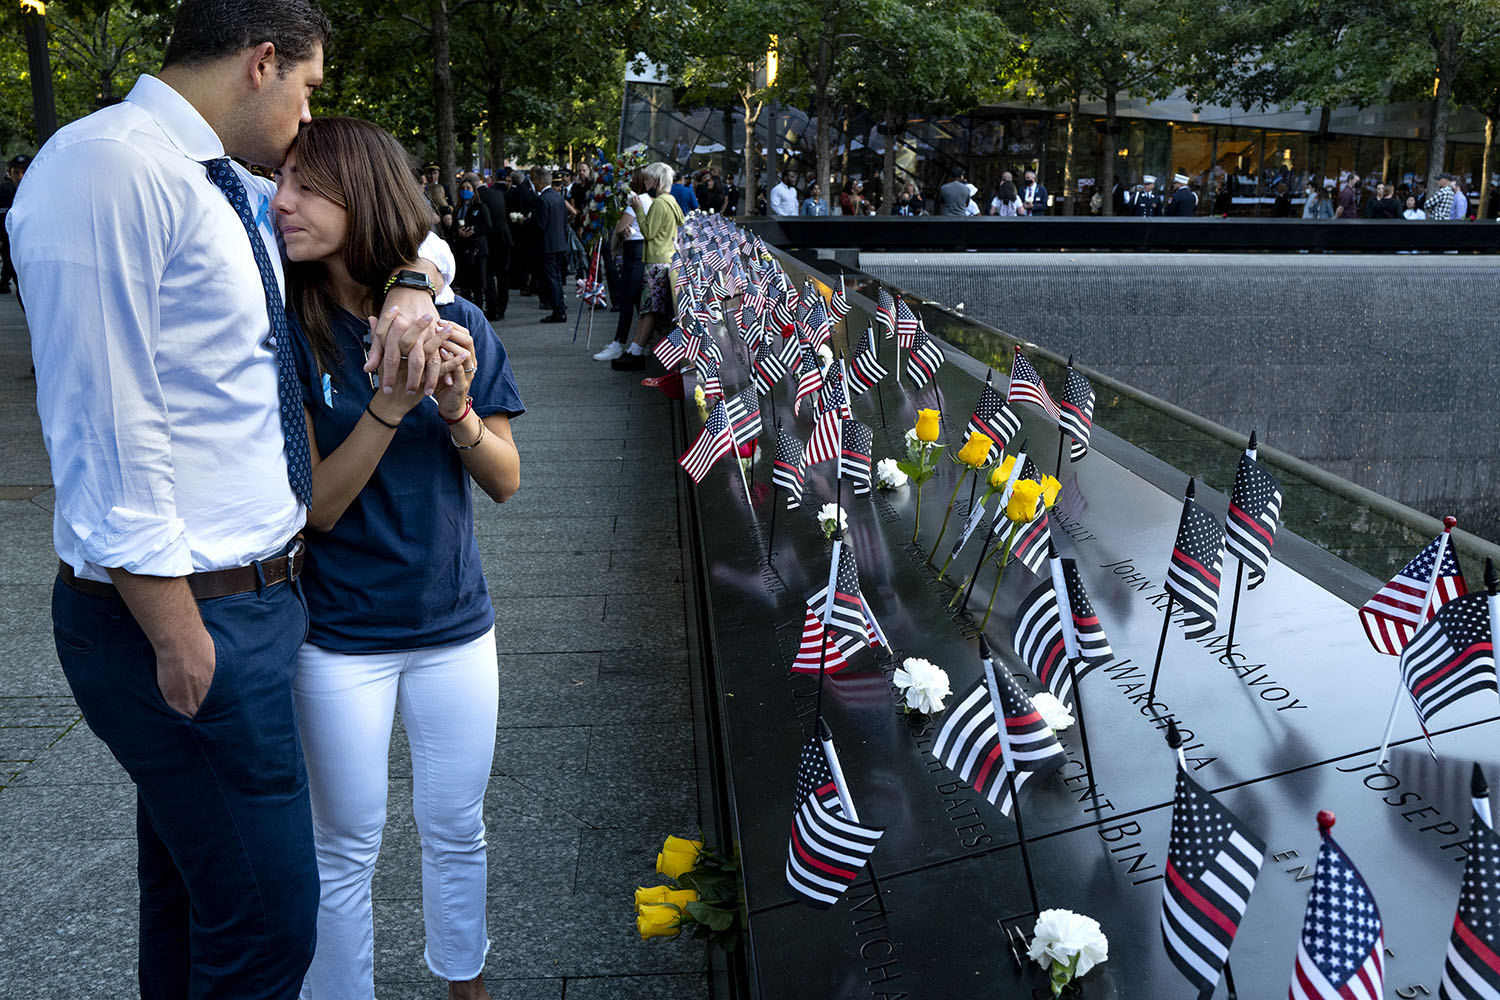 Katie Mascali is comforted by her fiance Andre Jabban as they stand near the name of her father, Joseph Mascali, a firefighter who was killed on 9/11, during a ceremony at the National September 11 Memorial & Museum commemorating the 20th anniversary of the terrorist attacks on the World Trade Center in New York City on Sept. 11. Craig Ruttle/Getty Images